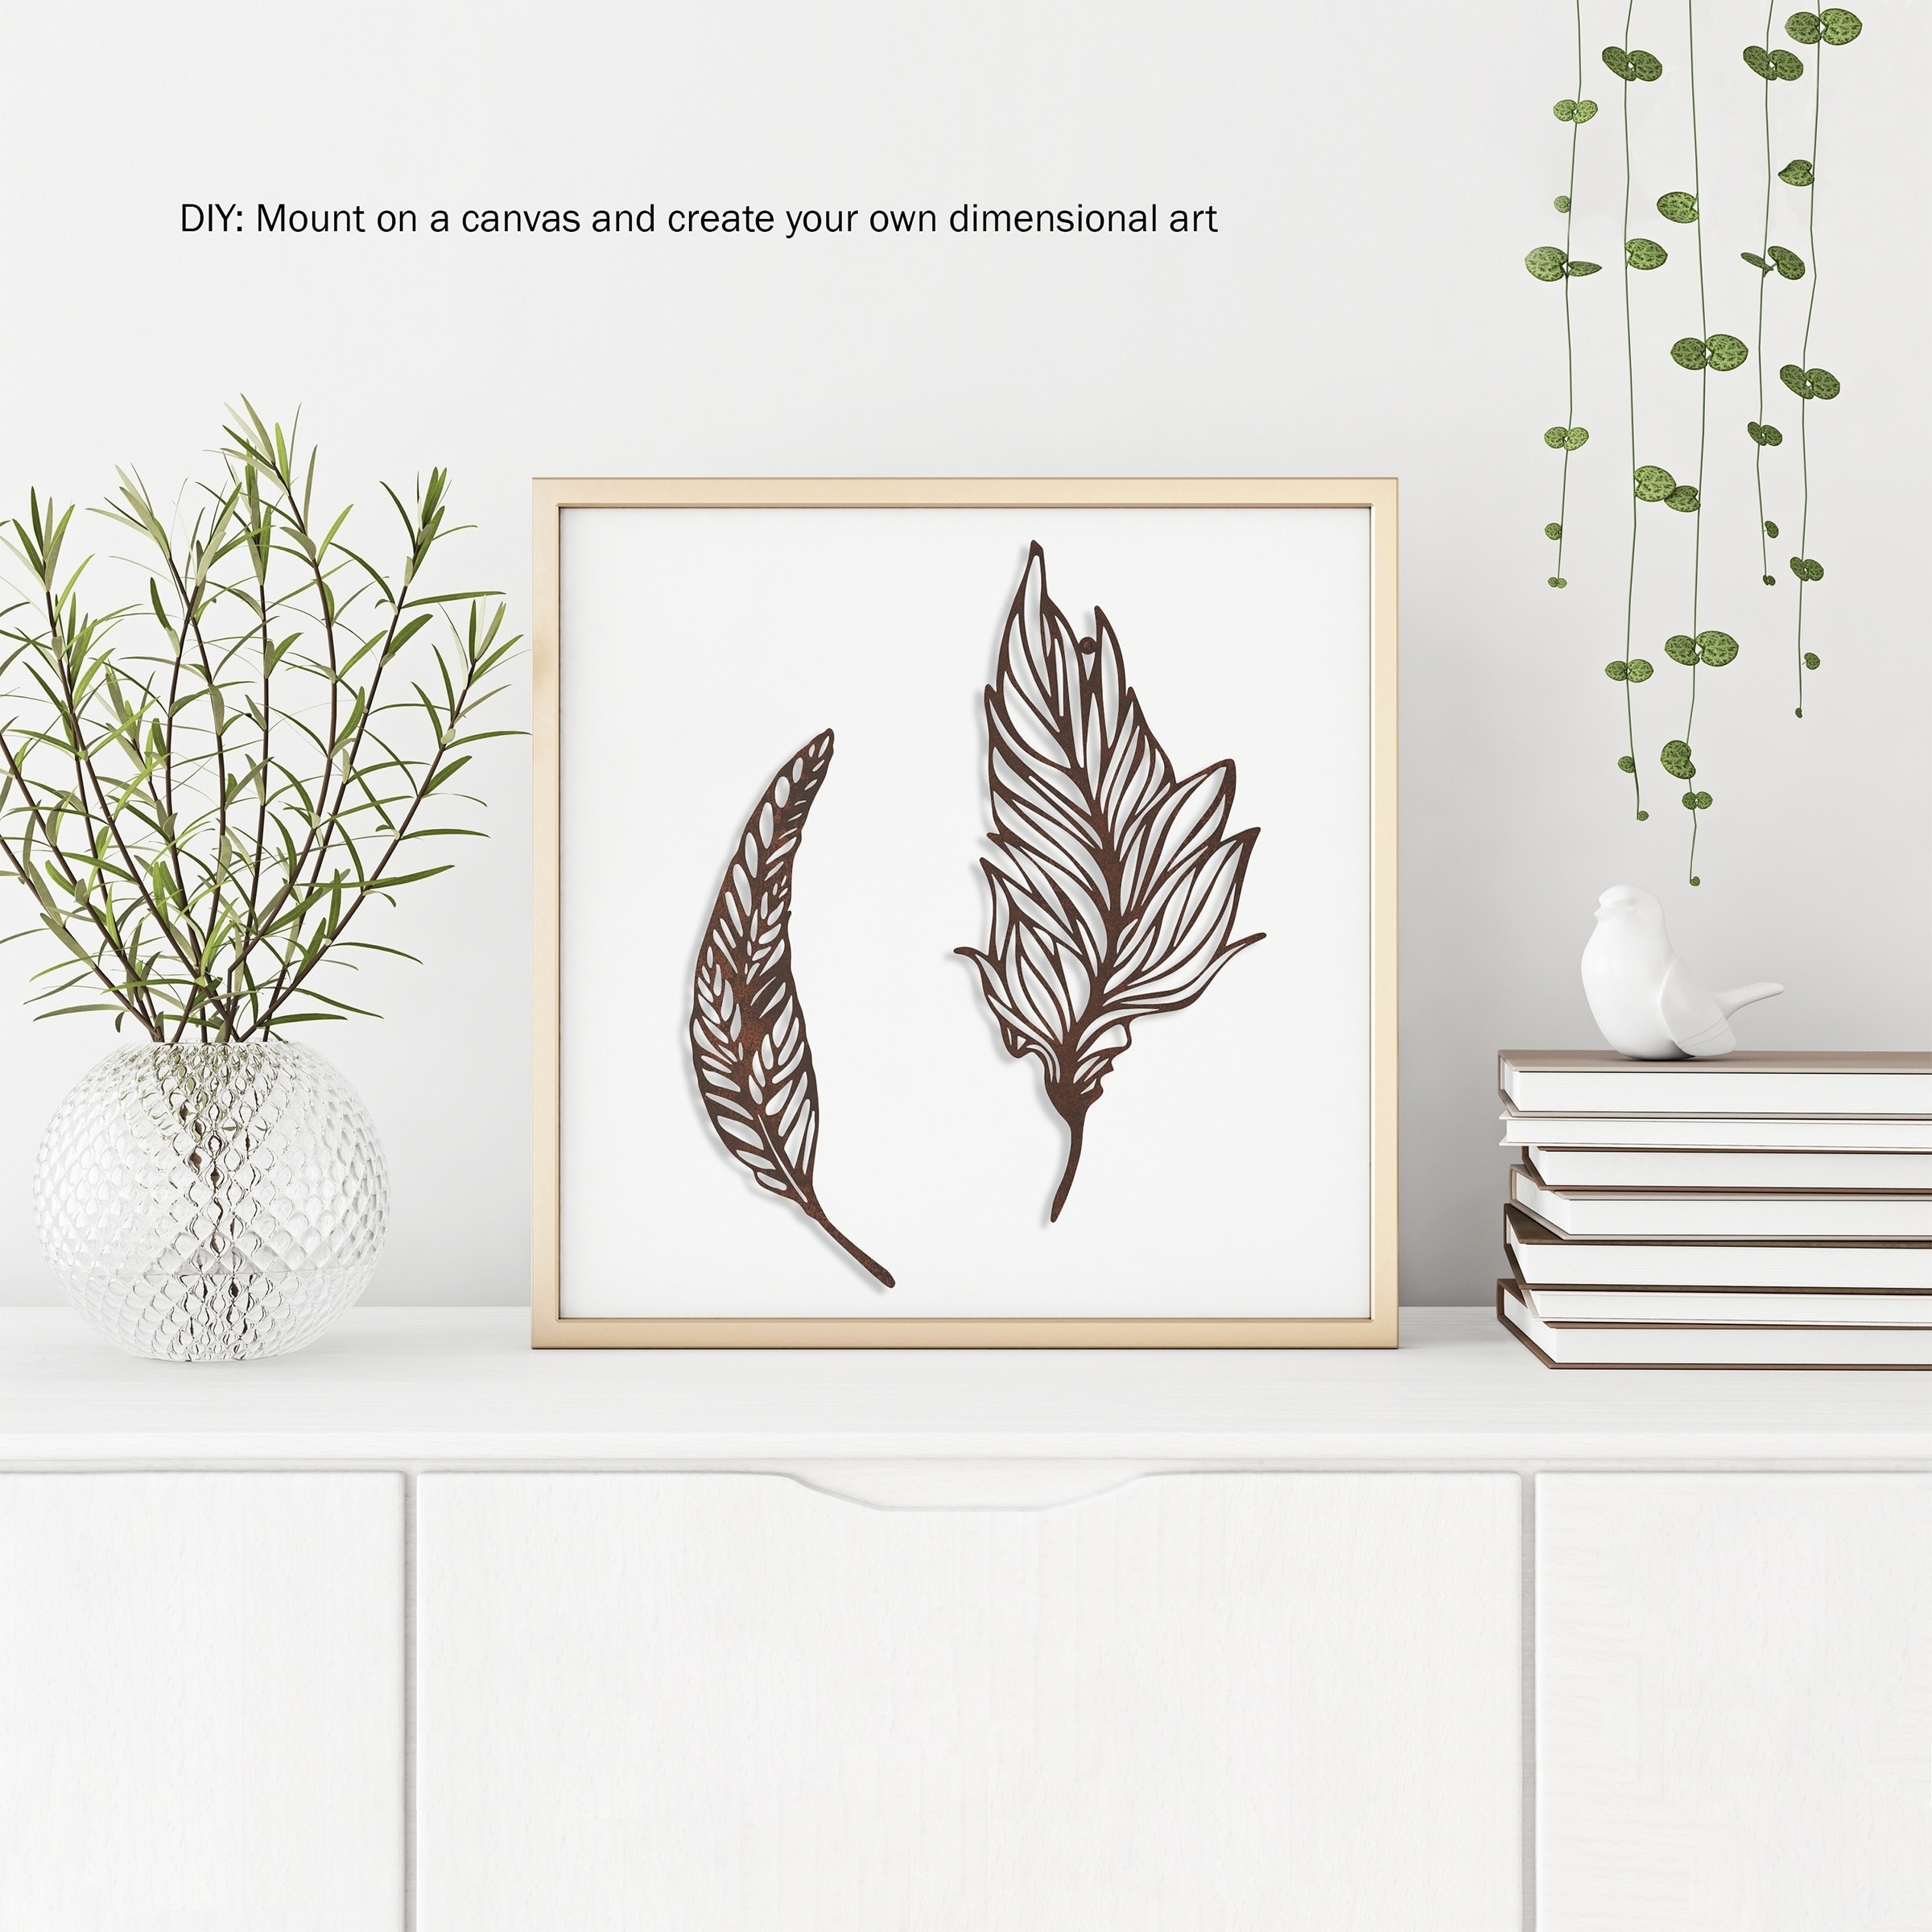 Shop Black Friday Deals On Wall Decor Set Of 2 Metal Feather Hanging Contemporary Wall Art For Living Room Bedroom Kitchen By Lavish Home Brown Overstock 27536852